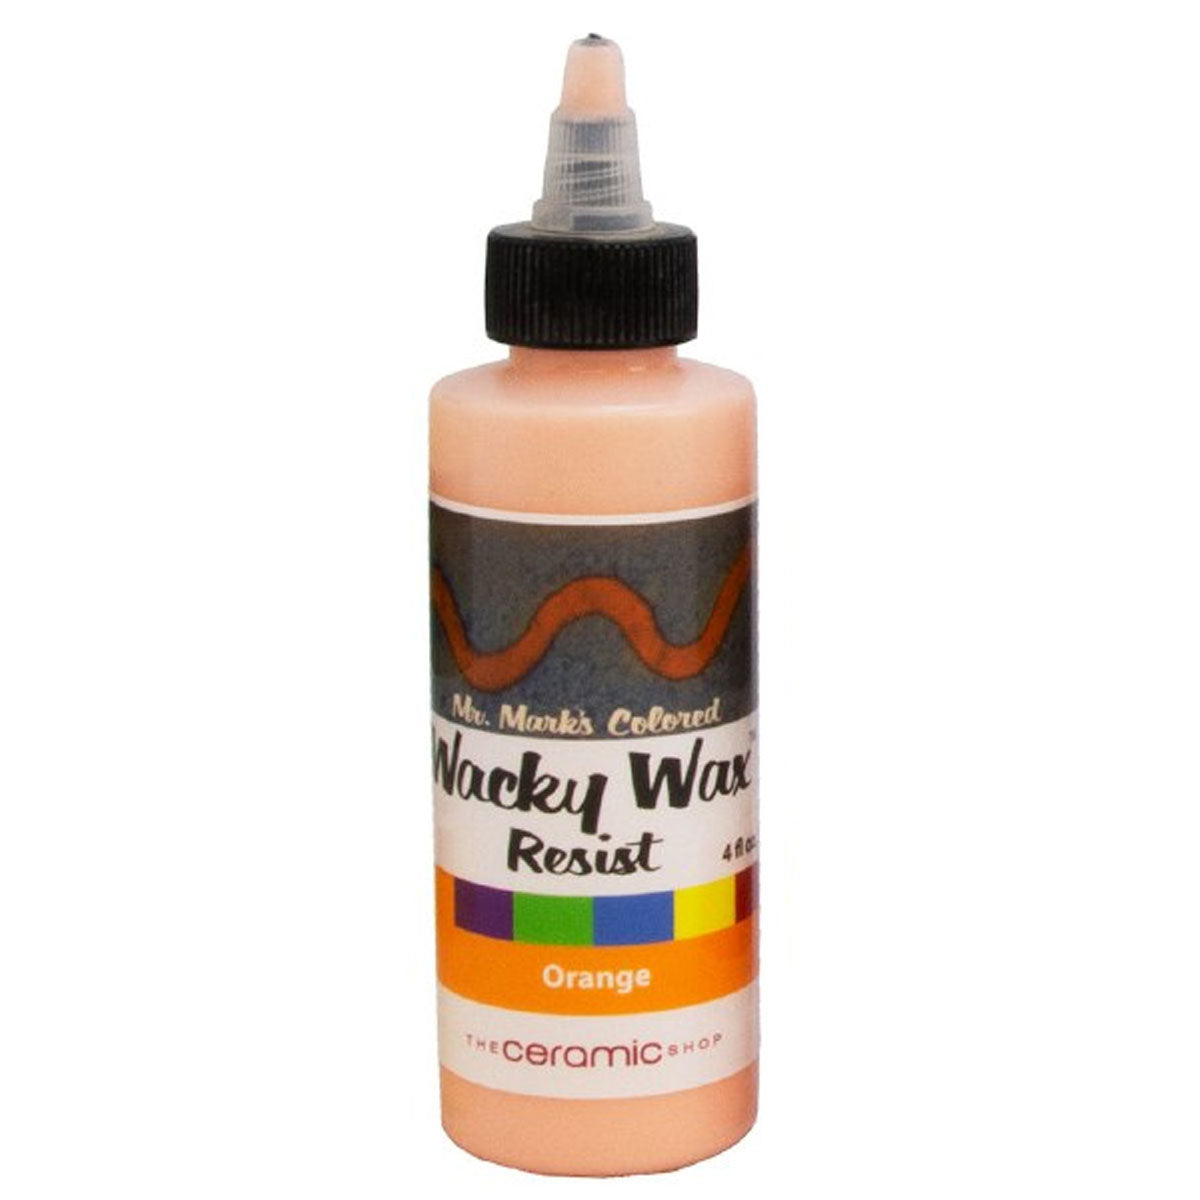 Wacky Wax Resist Orange, 4 oz